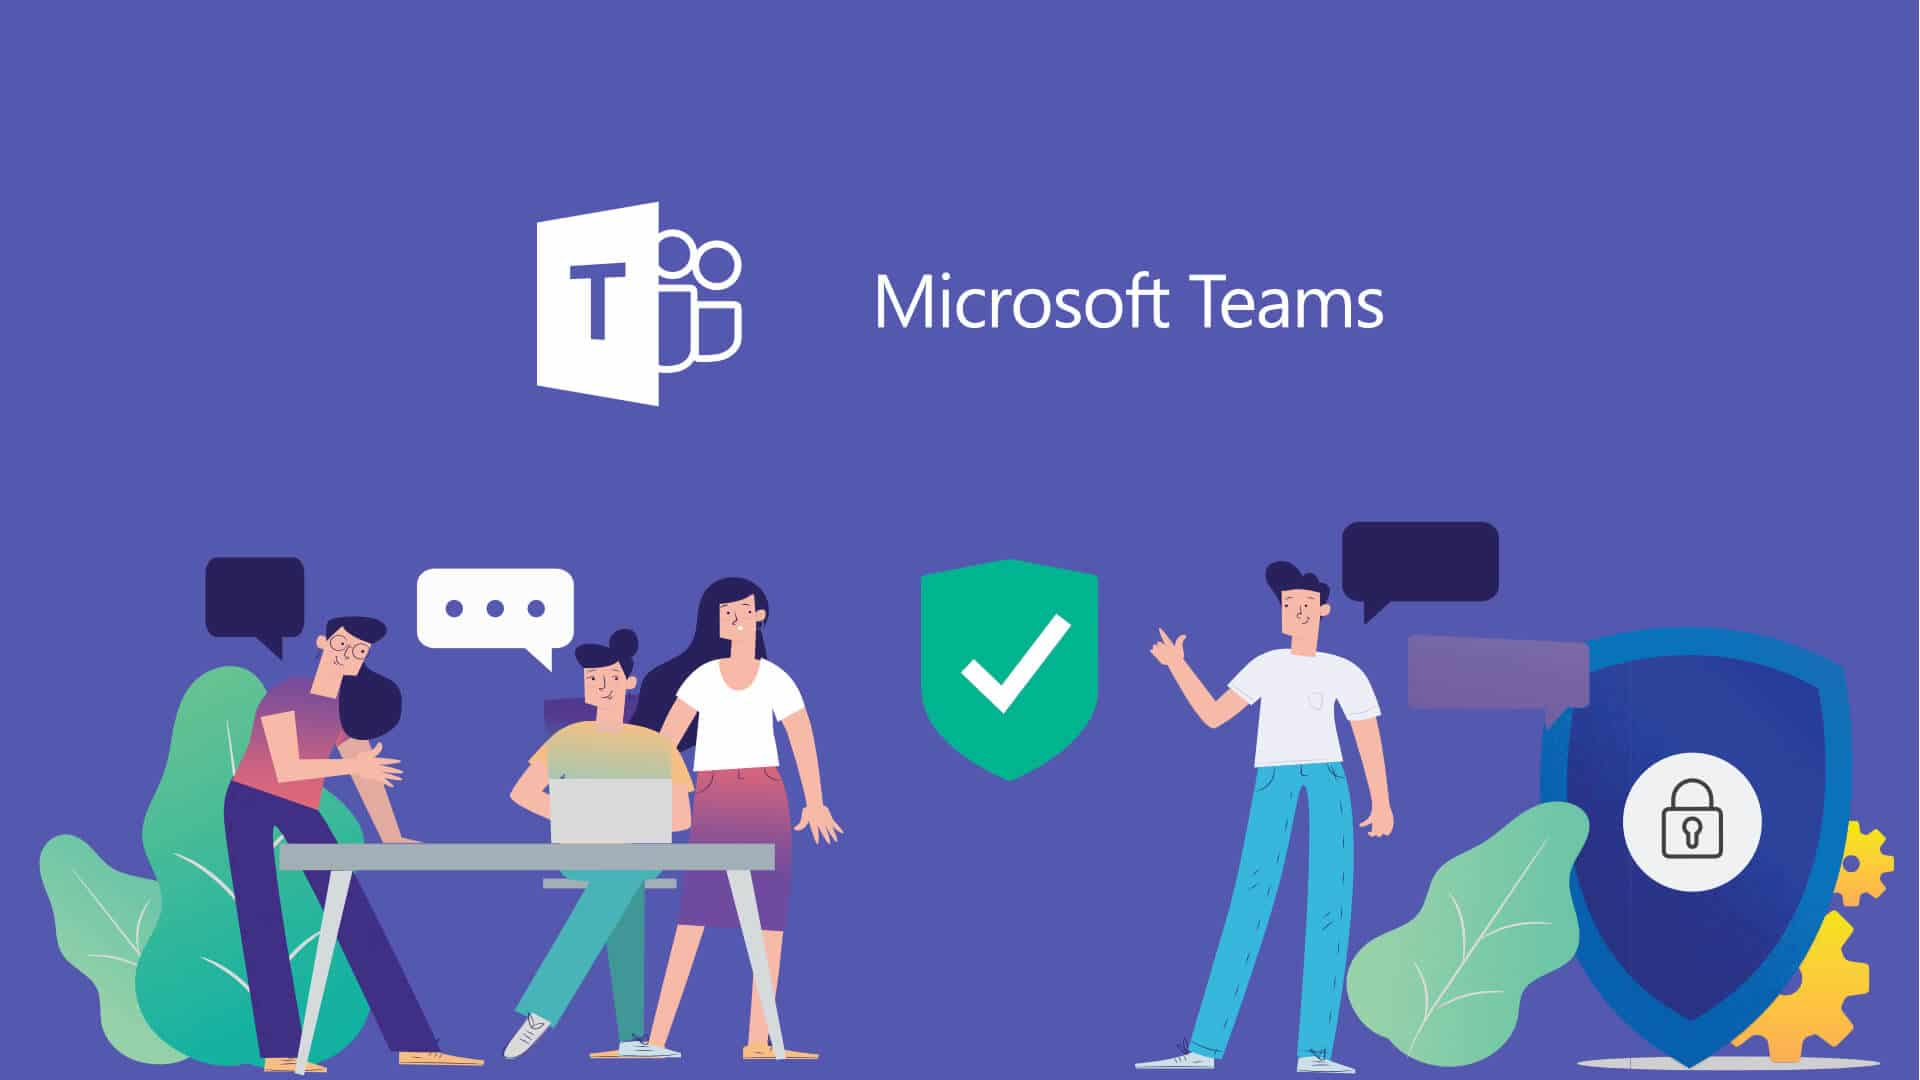 illustrazione teams di microsoft